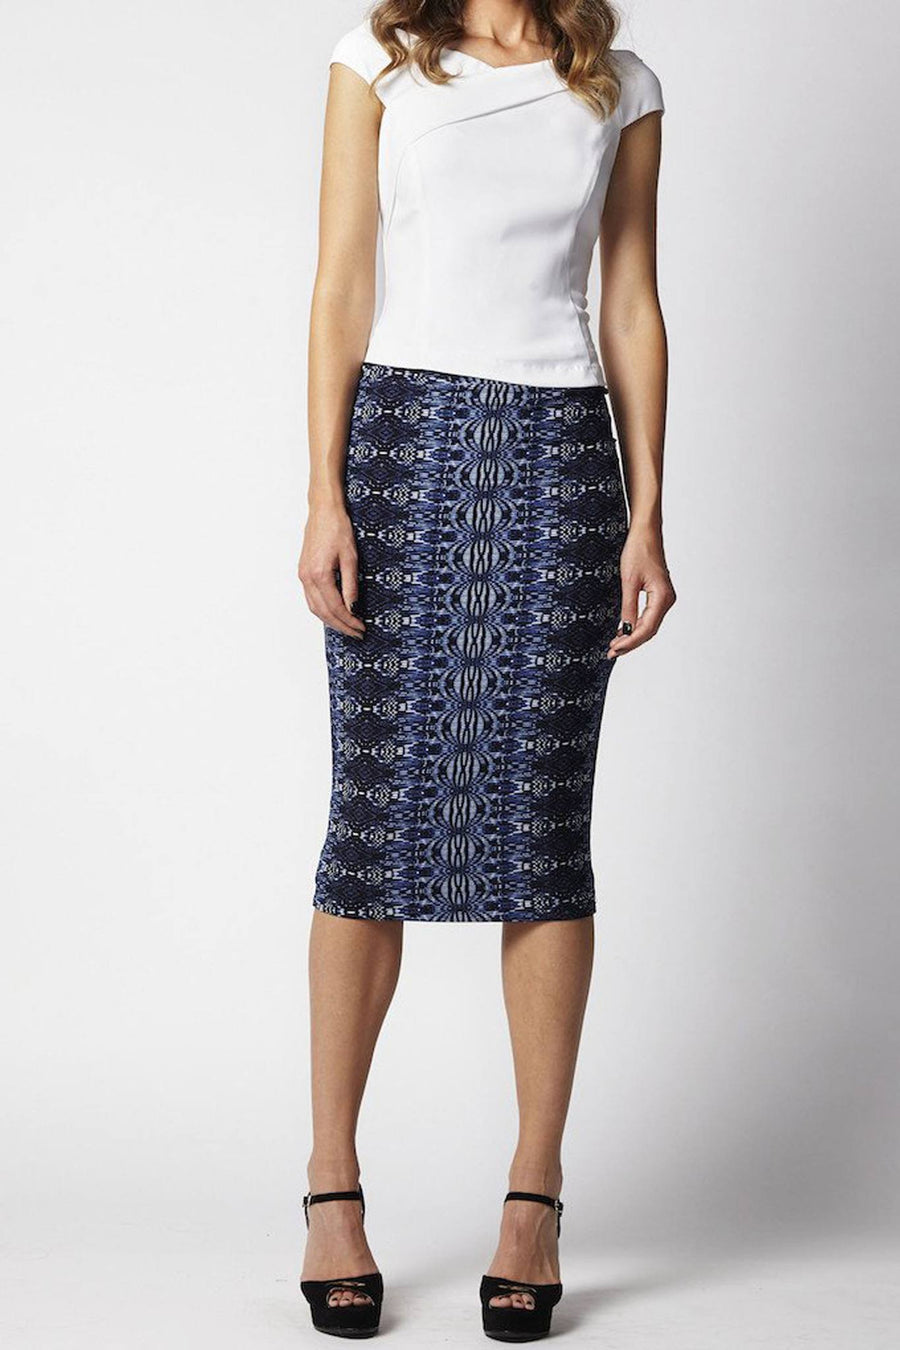 smit-cim-skirt-by-very-very